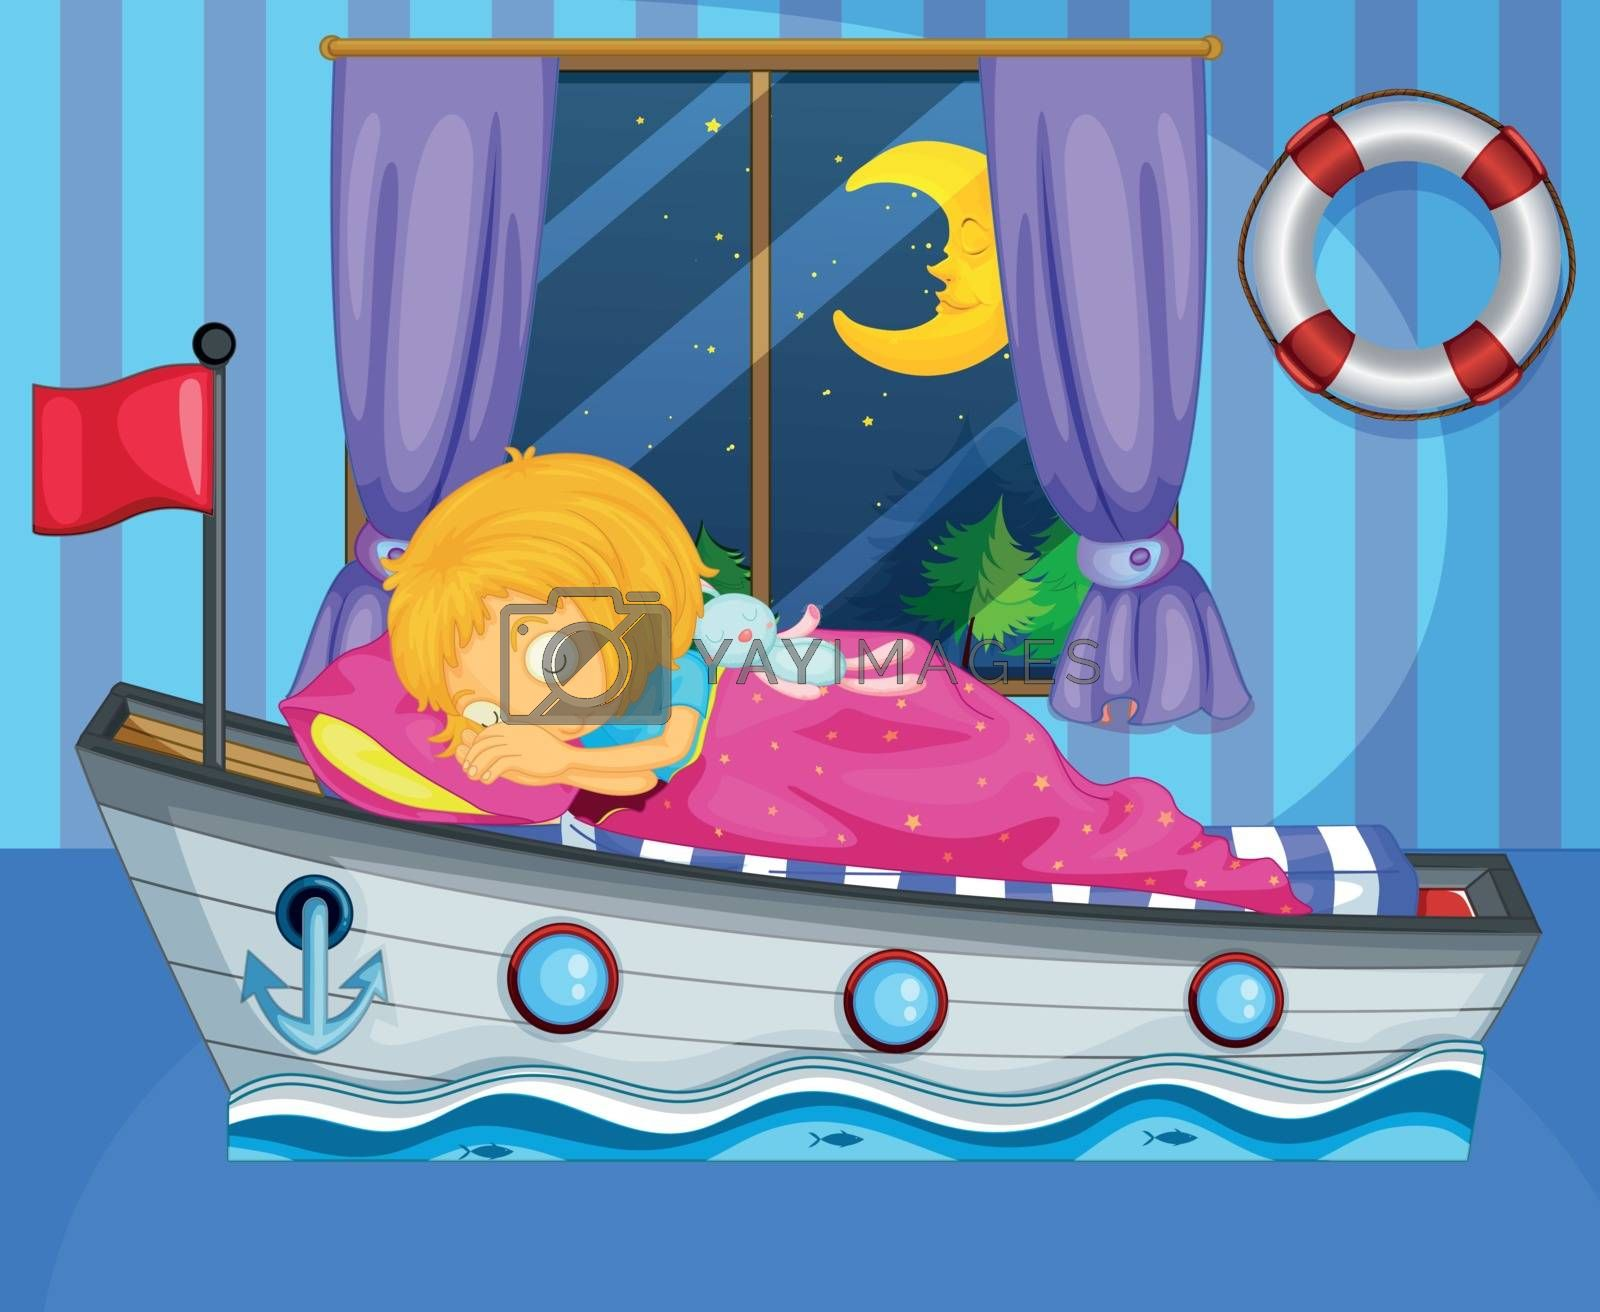 Illustration of a girl sleeping on her boat-like bed